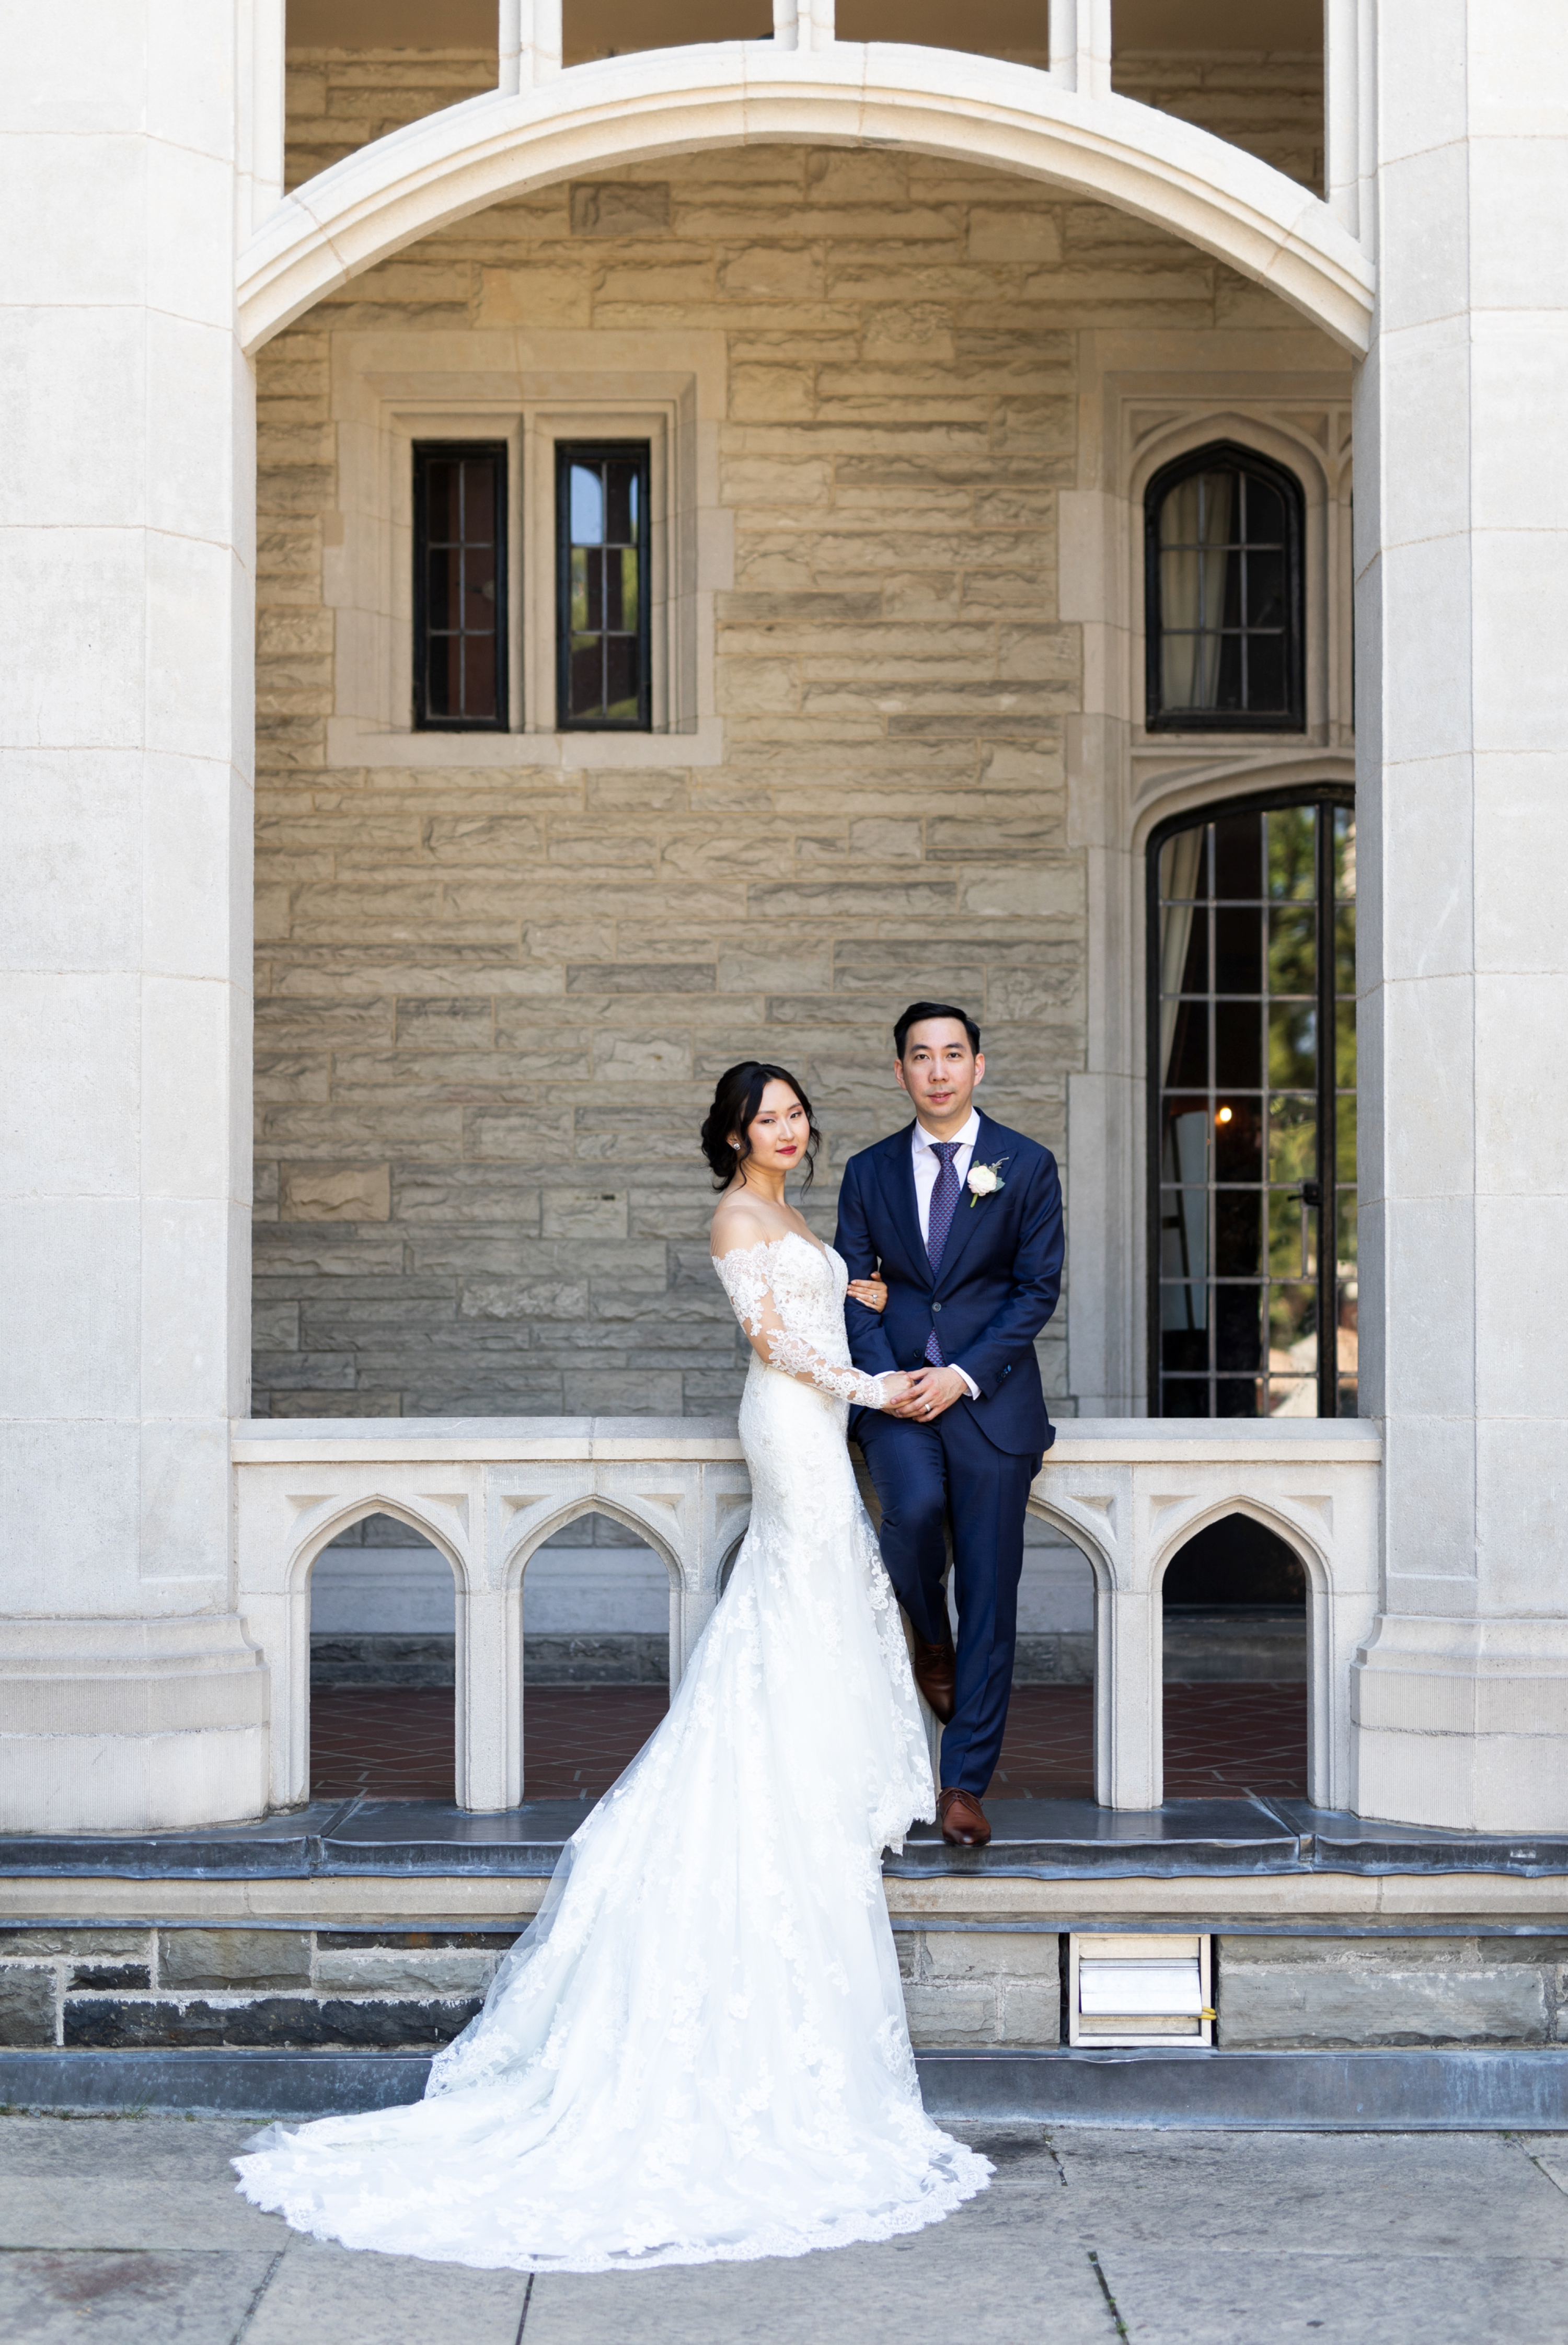 Castle Wall Toronto Casa Loma Four Seasons Chinese Wedding Zsuzsi Pal Photography Cindy Brian